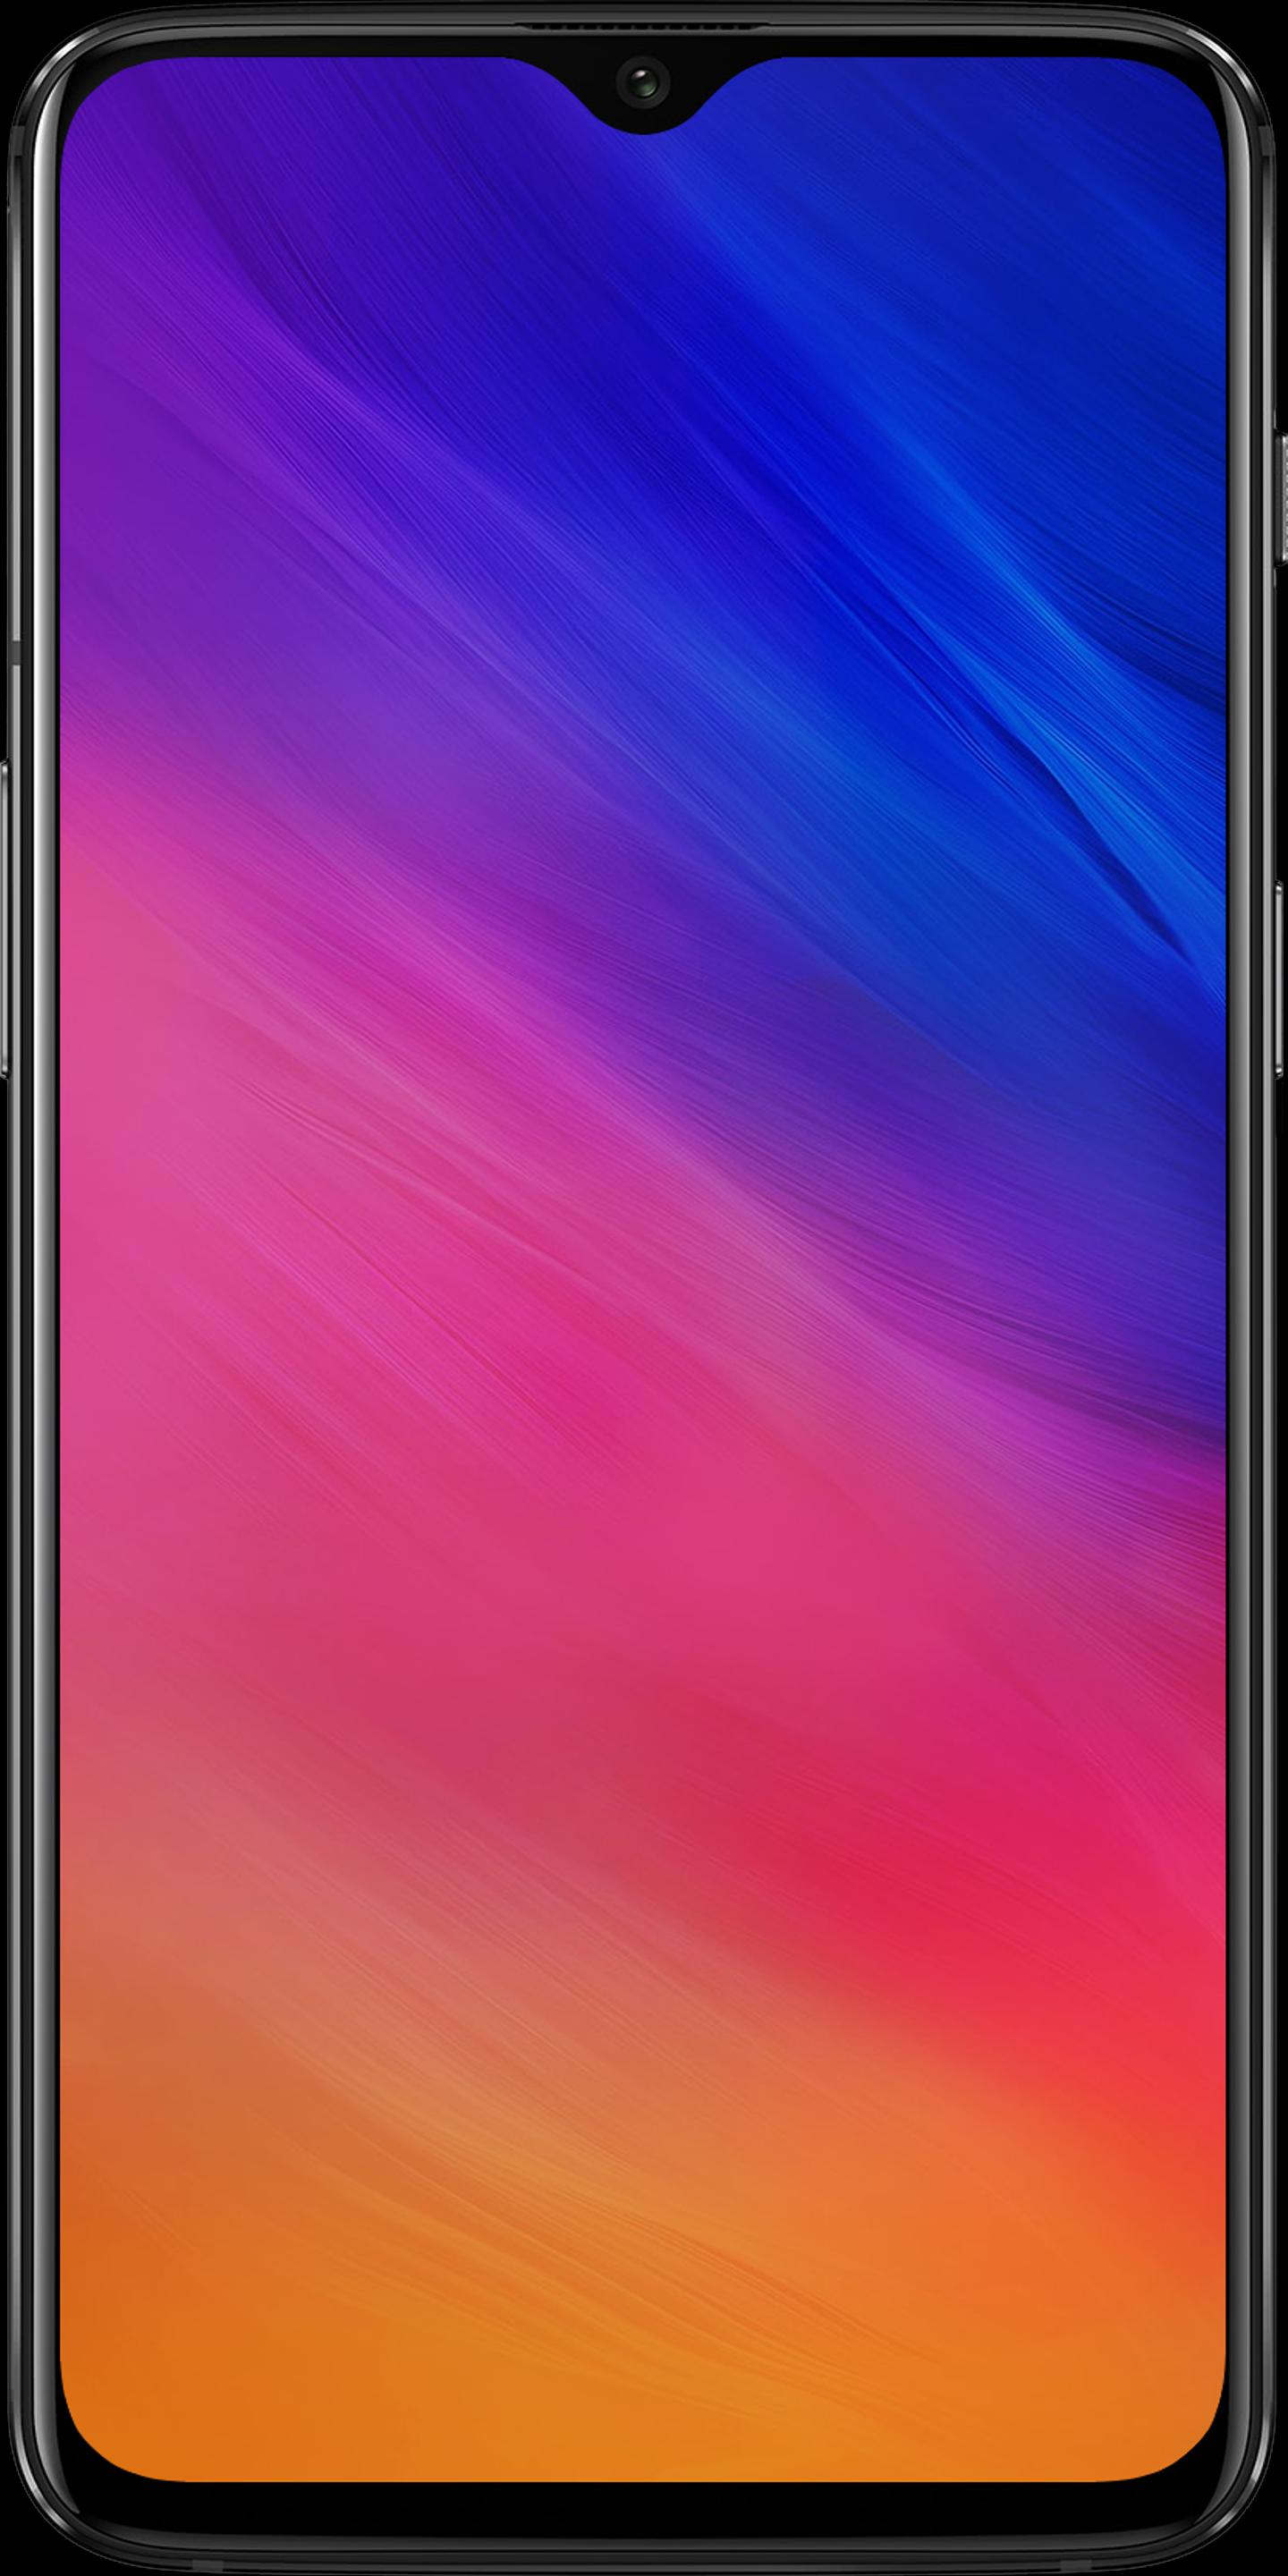 Hd Vivo Y93 Wallpapers For Android Apk Download